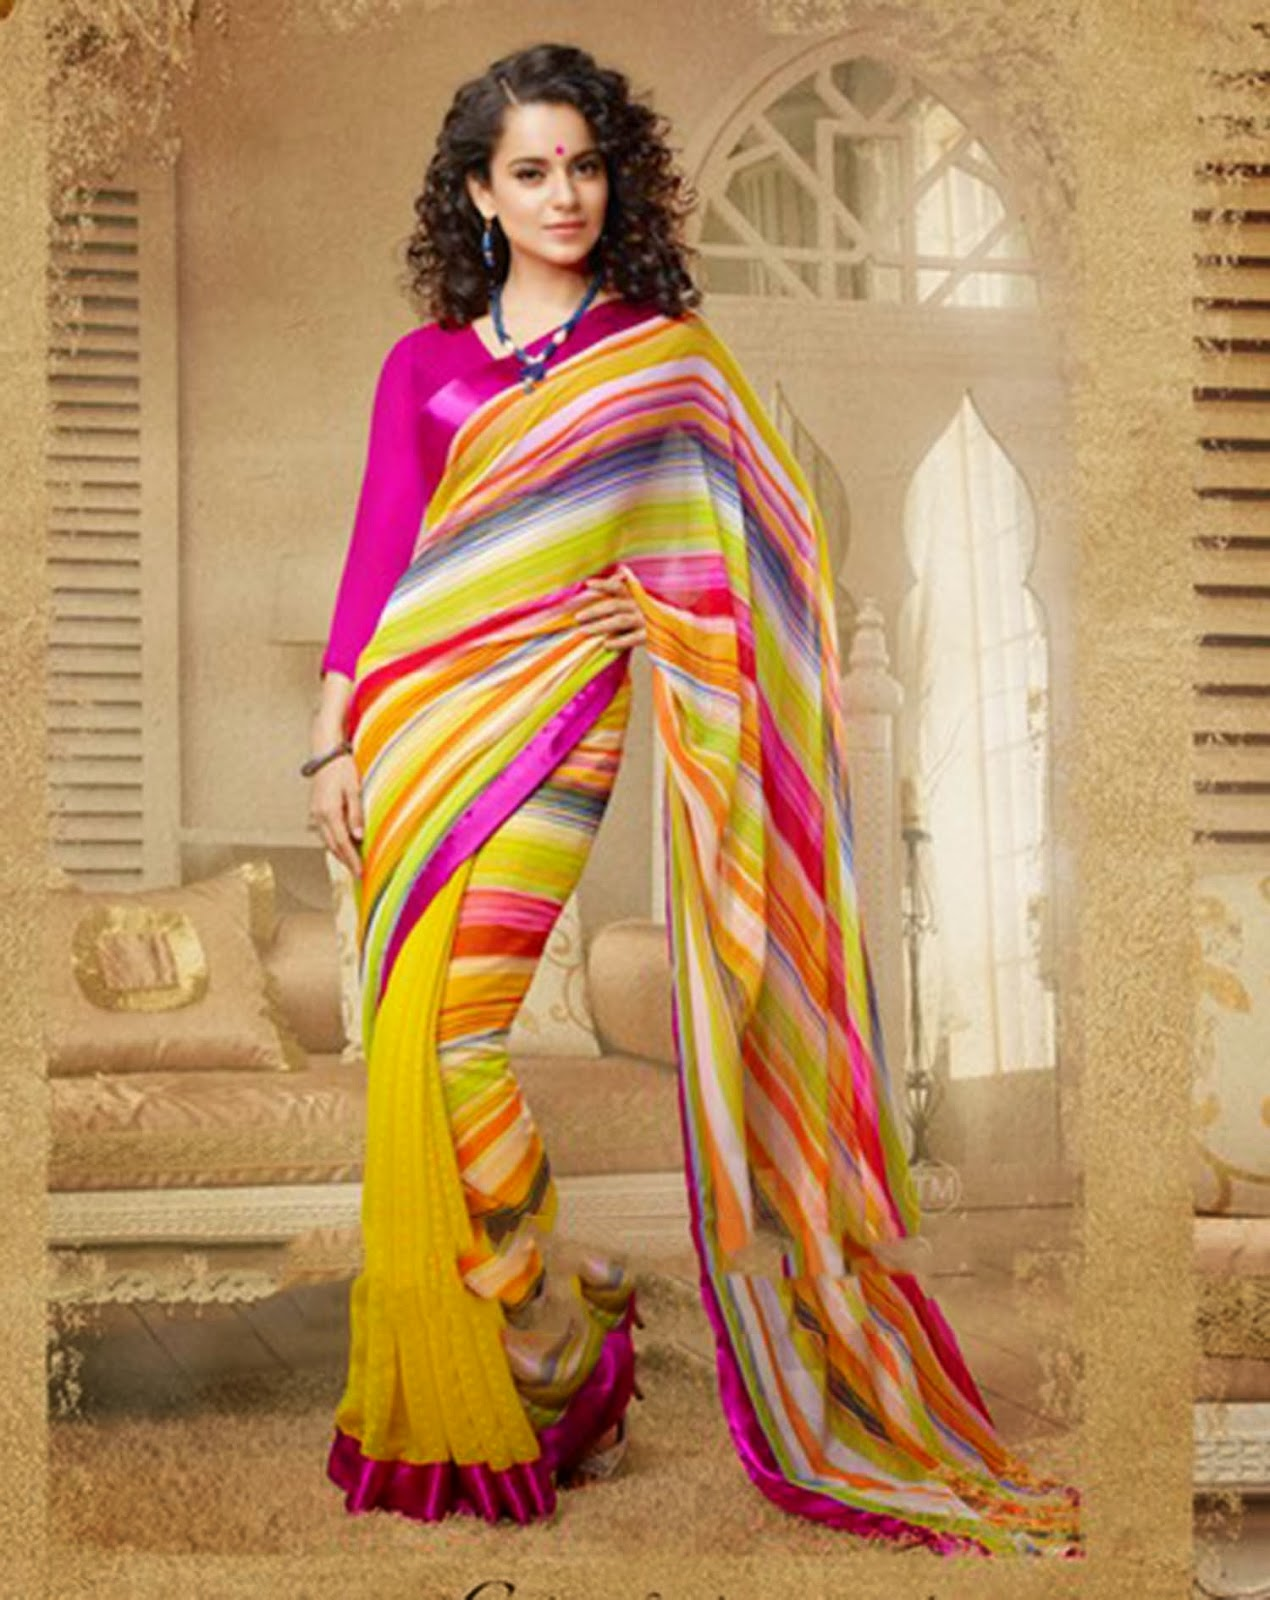 Kangna Ranaut  wallpapers,Kangna Ranaut  latest wallpapers,Kangna Ranaut  hot wallpapers,Kangna Ranaut  hot hd wallpapers,Kangna Ranaut  latest hot wallpapers,Kangna Ranaut  hd wallpapers,Kangna Ranaut  wallpapers hot,Kangna Ranaut  wallpapers hd,Kangna Ranaut  pictures,Kangna Ranaut  hot pictures,Kangna Ranaut  latest hot pictures,Kangna Ranaut  images,Kangna Ranaut  hot images,Kangna Ranaut  latest images,Kangna Ranaut  pics,Kangna Ranaut  hot pics,Kangna Ranaut  latest pics,Kangna Ranaut  latest hot pics,Kangna Ranaut  photos,Kangna Ranaut  hot photos,Kangna Ranaut  latest hot photos,Kangna Ranaut  photo shoot,Kangna Ranaut  latest photo shoot,Kangna Ranaut  in half saree,Kangna Ranaut  in saree,Kangna Ranaut  blouse model,Kangna Ranaut  in tshirt,Kangna Ranaut  in jeans,Kangna Ranaut  hair style,Kangna Ranaut  eyes,Kangna Ranaut  eye brows,Kangna Ranaut  hair color,Kangna Ranaut  height,Kangna Ranaut  weight,Kangna Ranaut  diet,Kangna Ranaut  boy friend,Kangna Ranaut  gossips,Kangna Ranaut  hot vedios,Kangna Ranaut  latest hot vedios,Kangna Ranaut  photo gallery,Kangna Ranaut  biodata,Kangna Ranaut  in wet dress,Kangna Ranaut  in beach stills,Kangna Ranaut  magazine cover page stills,Kangna Ranaut  stills,Kangna Ranaut  high resolution pictures,Kangna Ranaut  high resolution wallpapers,pictures of Kangna Ranaut ,pics of Kangna Ranaut  ,Kangna Ranaut   fake wallpapers,Kangna Ranaut   fake pictures